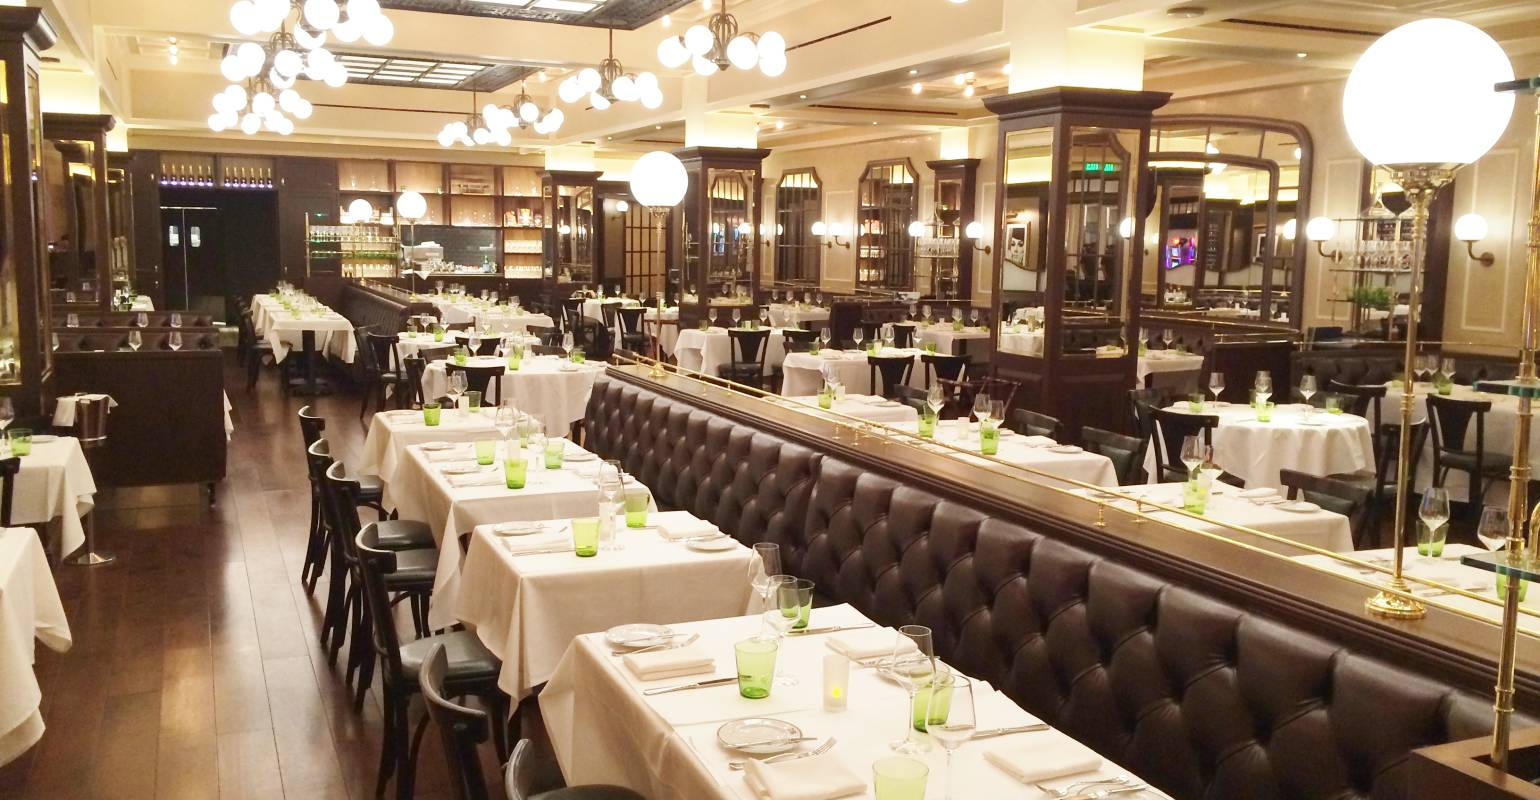 db Brasserie (The Venetian)